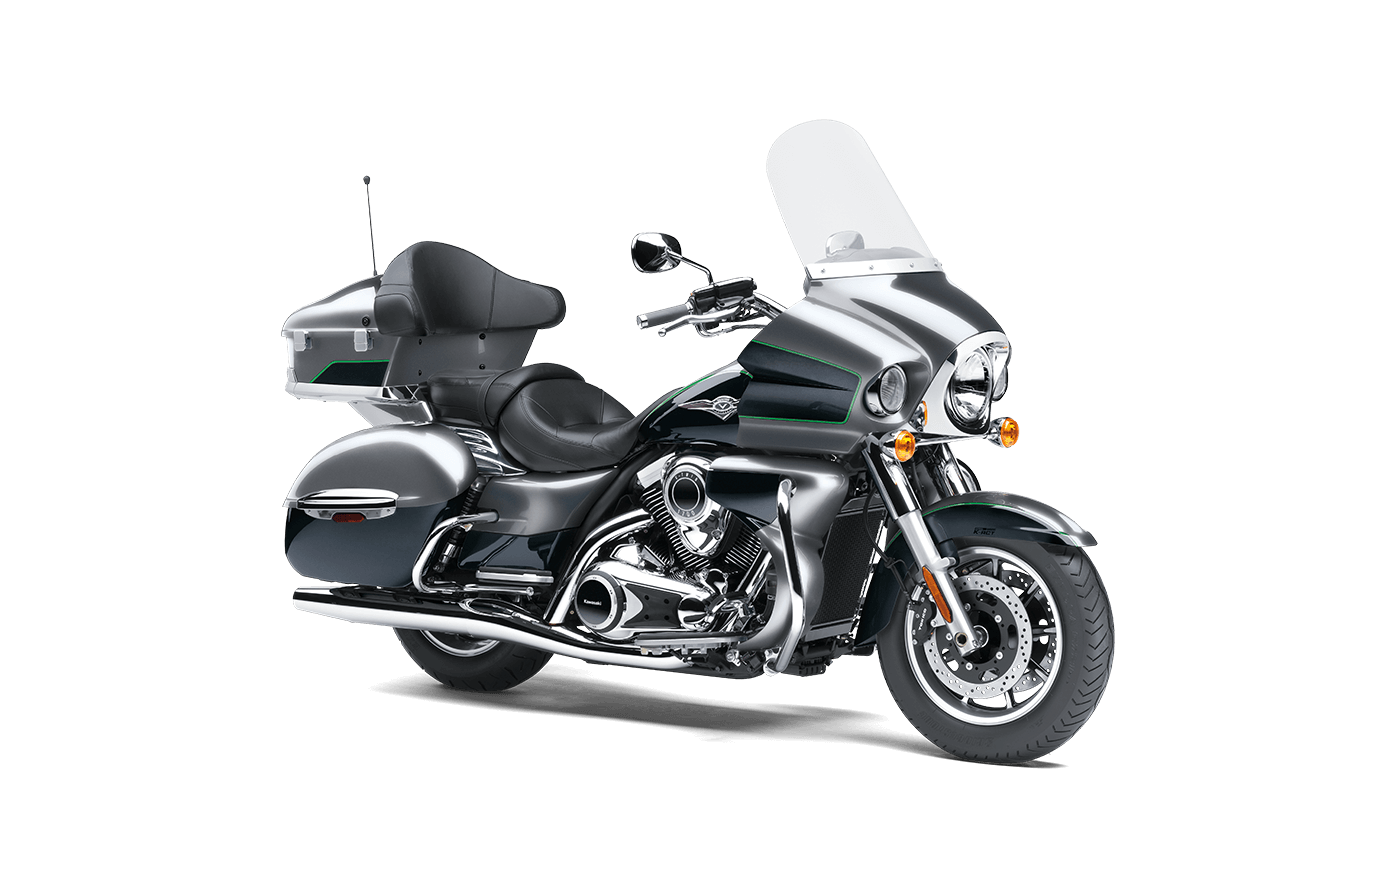 2020 VULCAN 1700 VOYAGER ABS